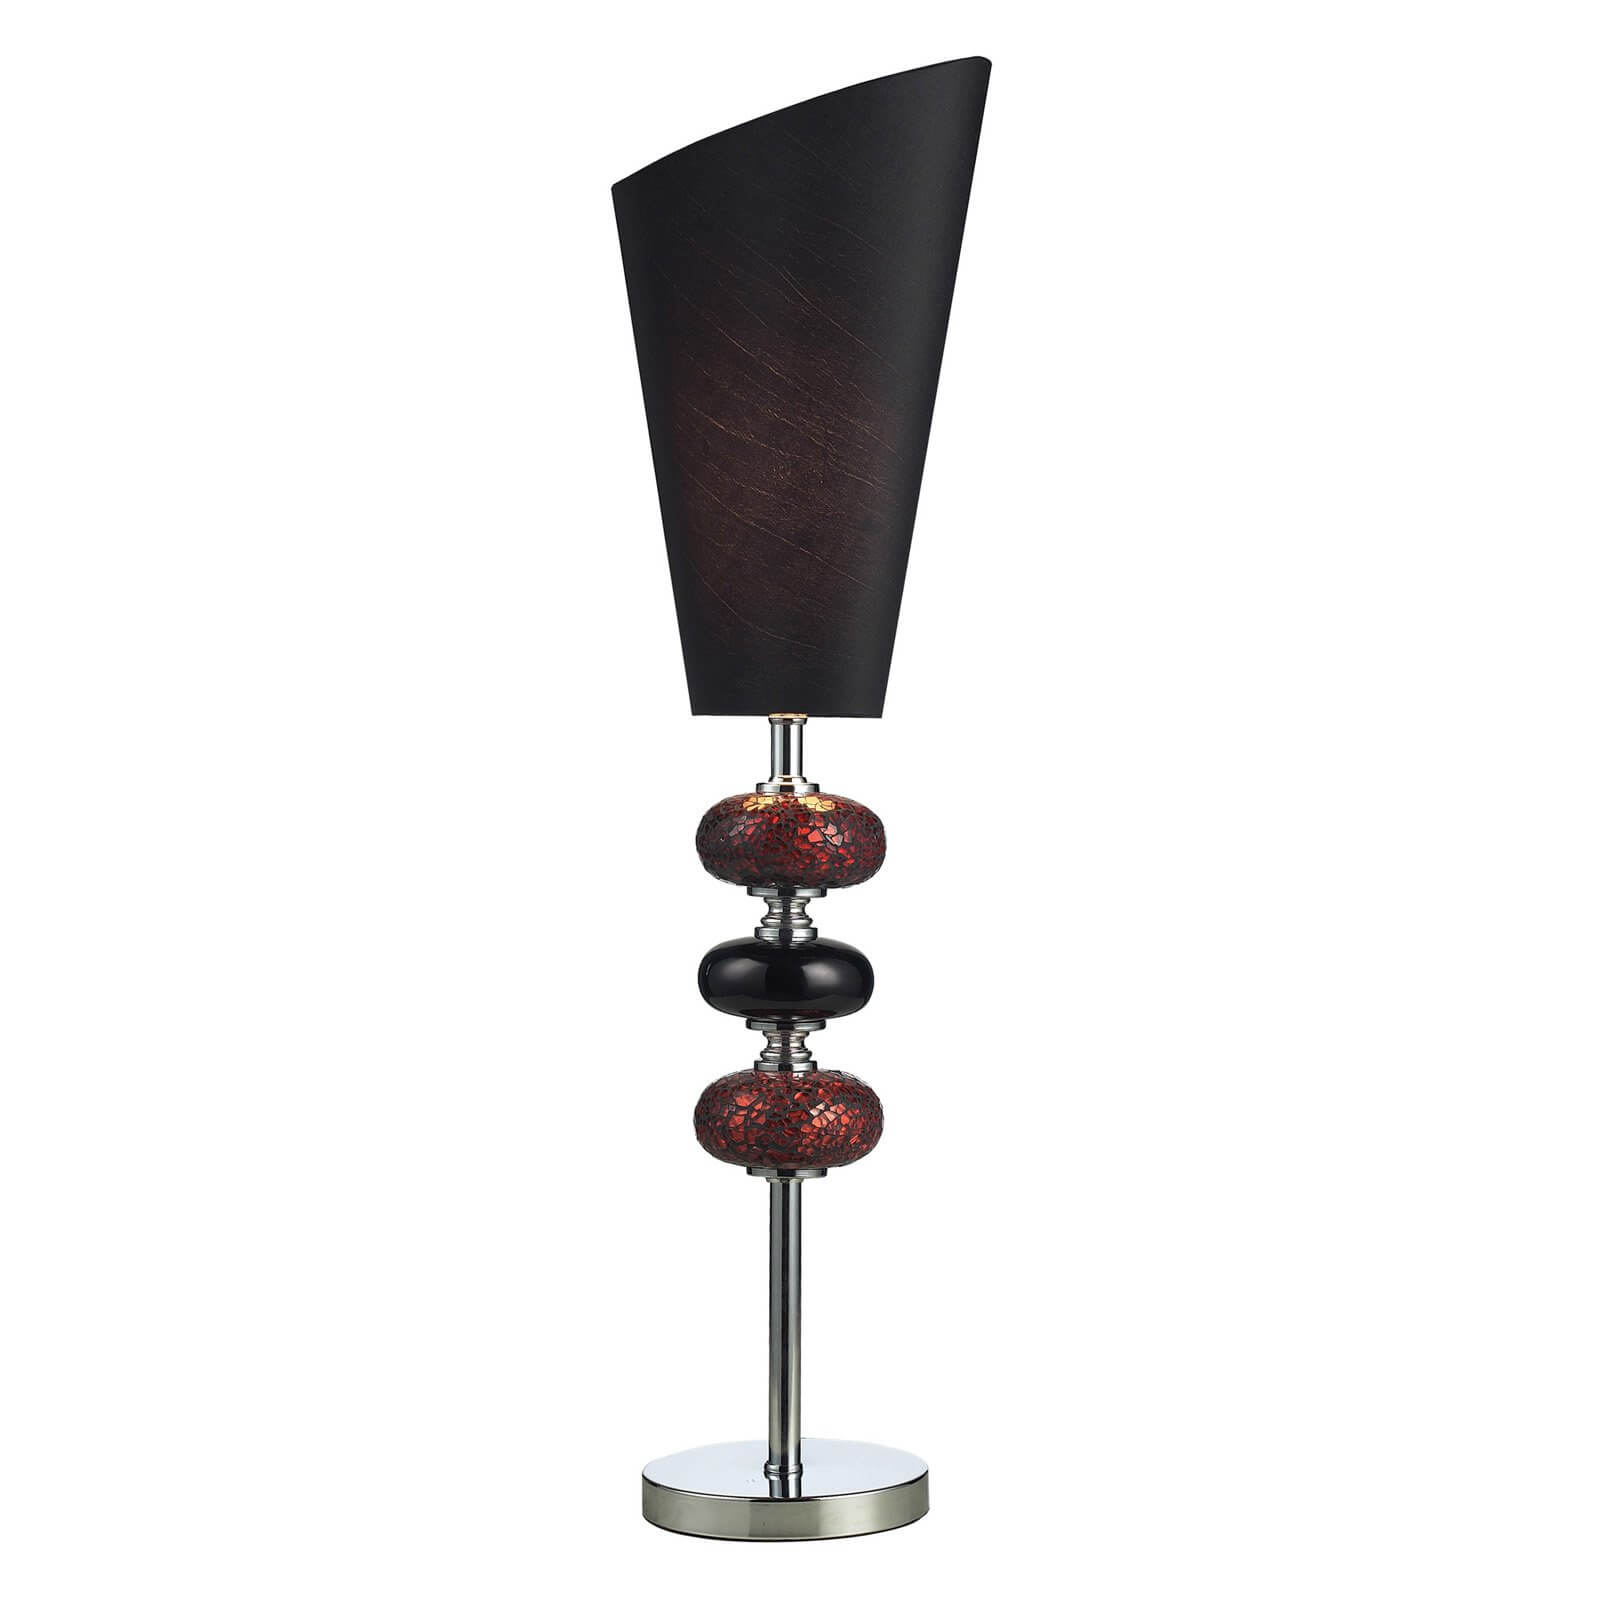 Our first torch lamp features a modern design, with metal body and angular shade.